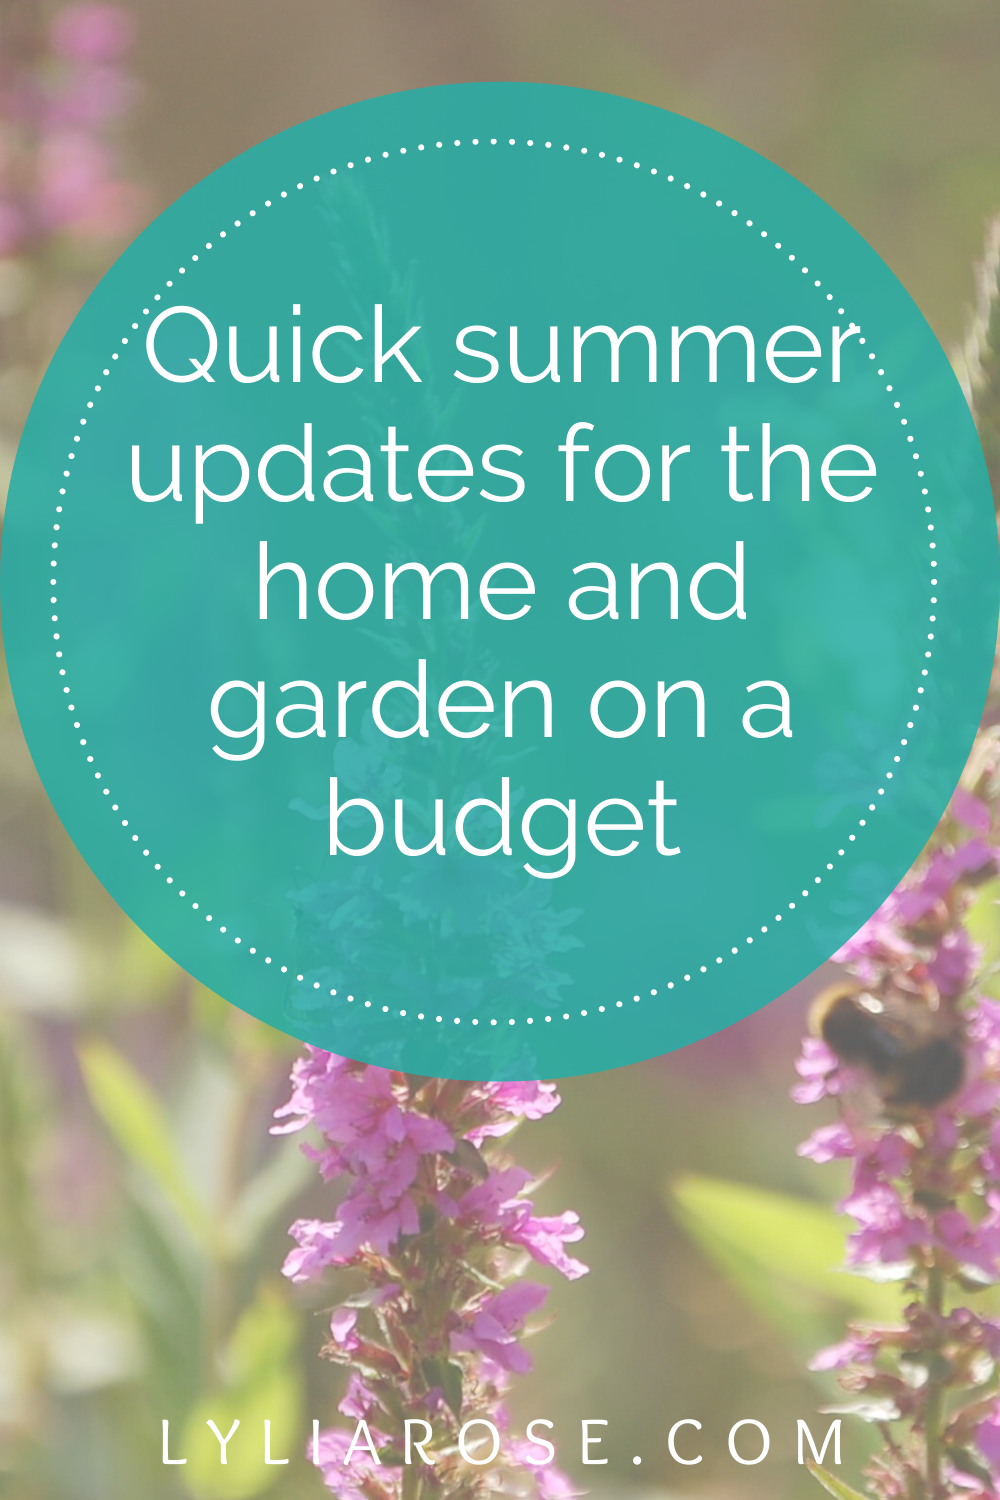 Quick summer updates for the home and garden on a budget (1)